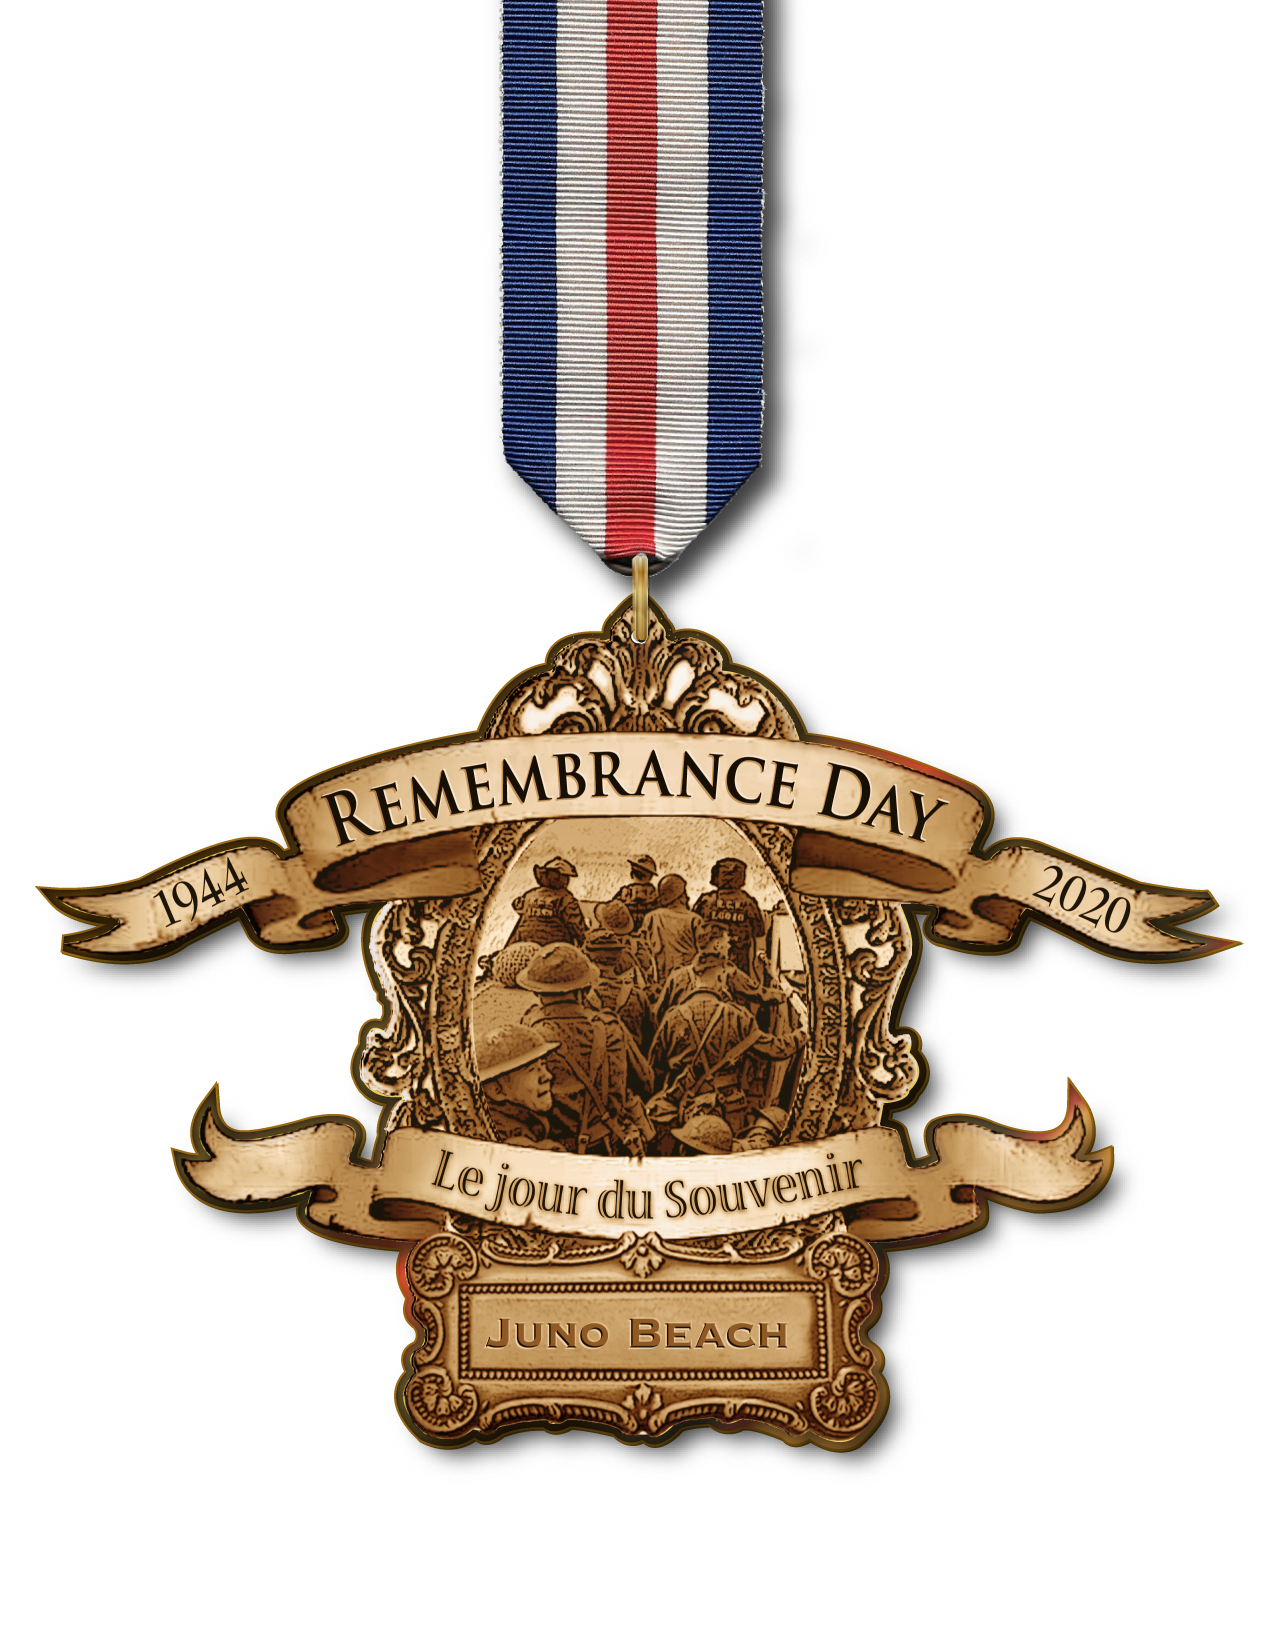 Remembrance Day Juno Beachmedal